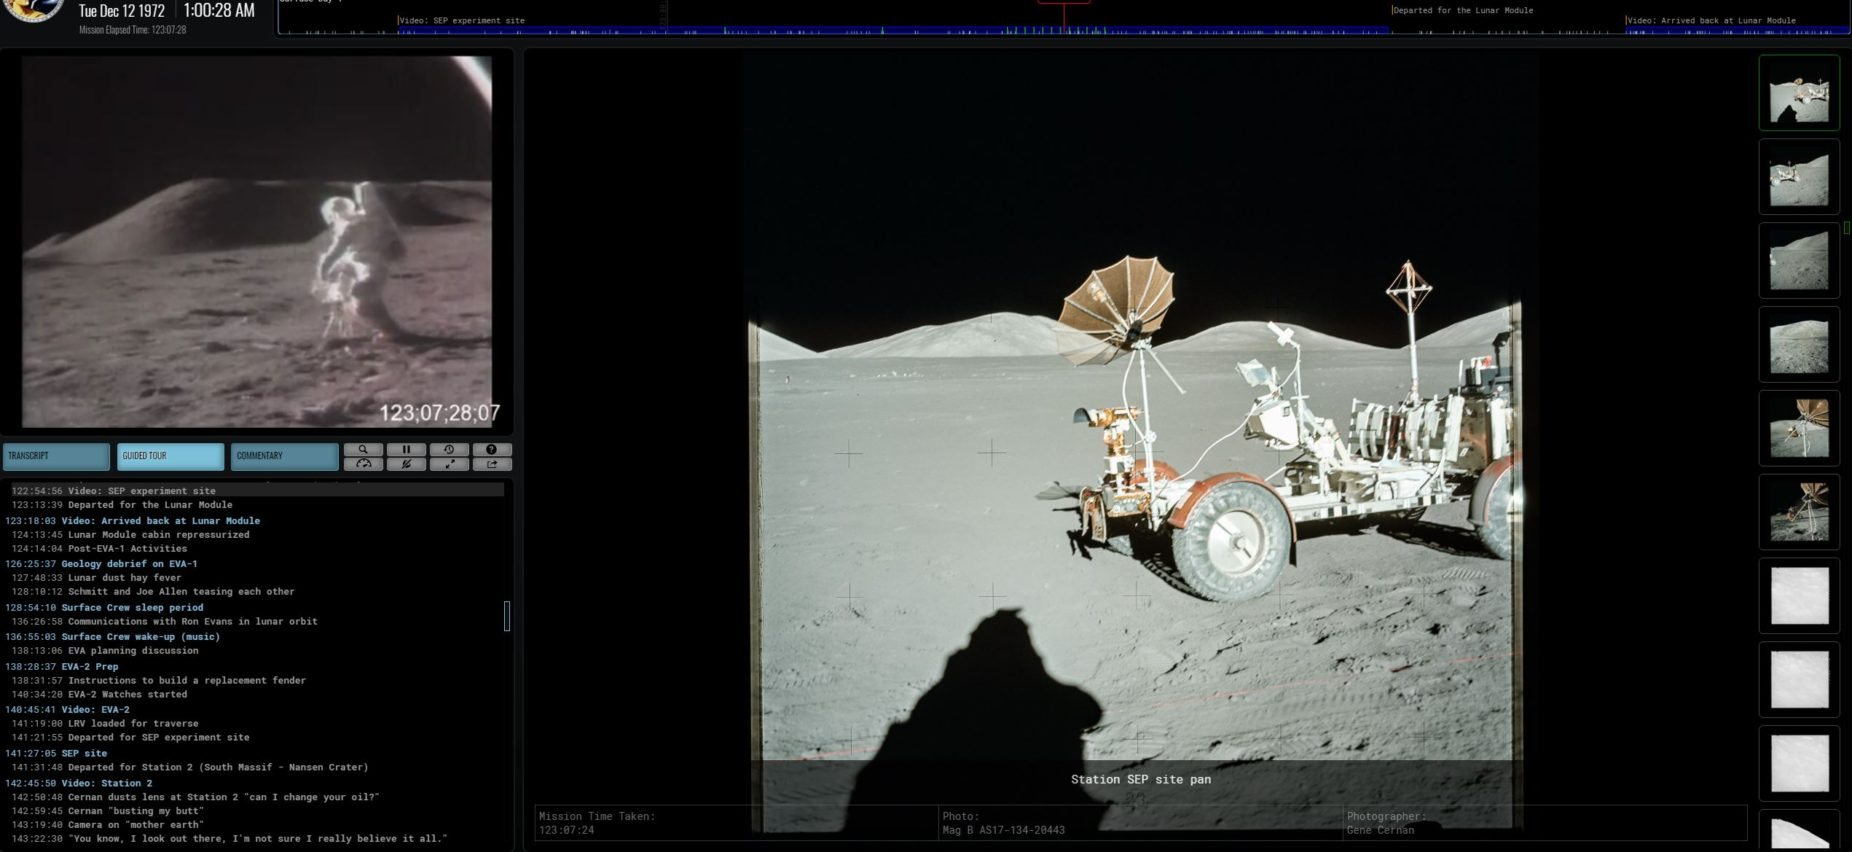 Image: Screen shot from the last time we went to the moon at Apollo17.org webpage